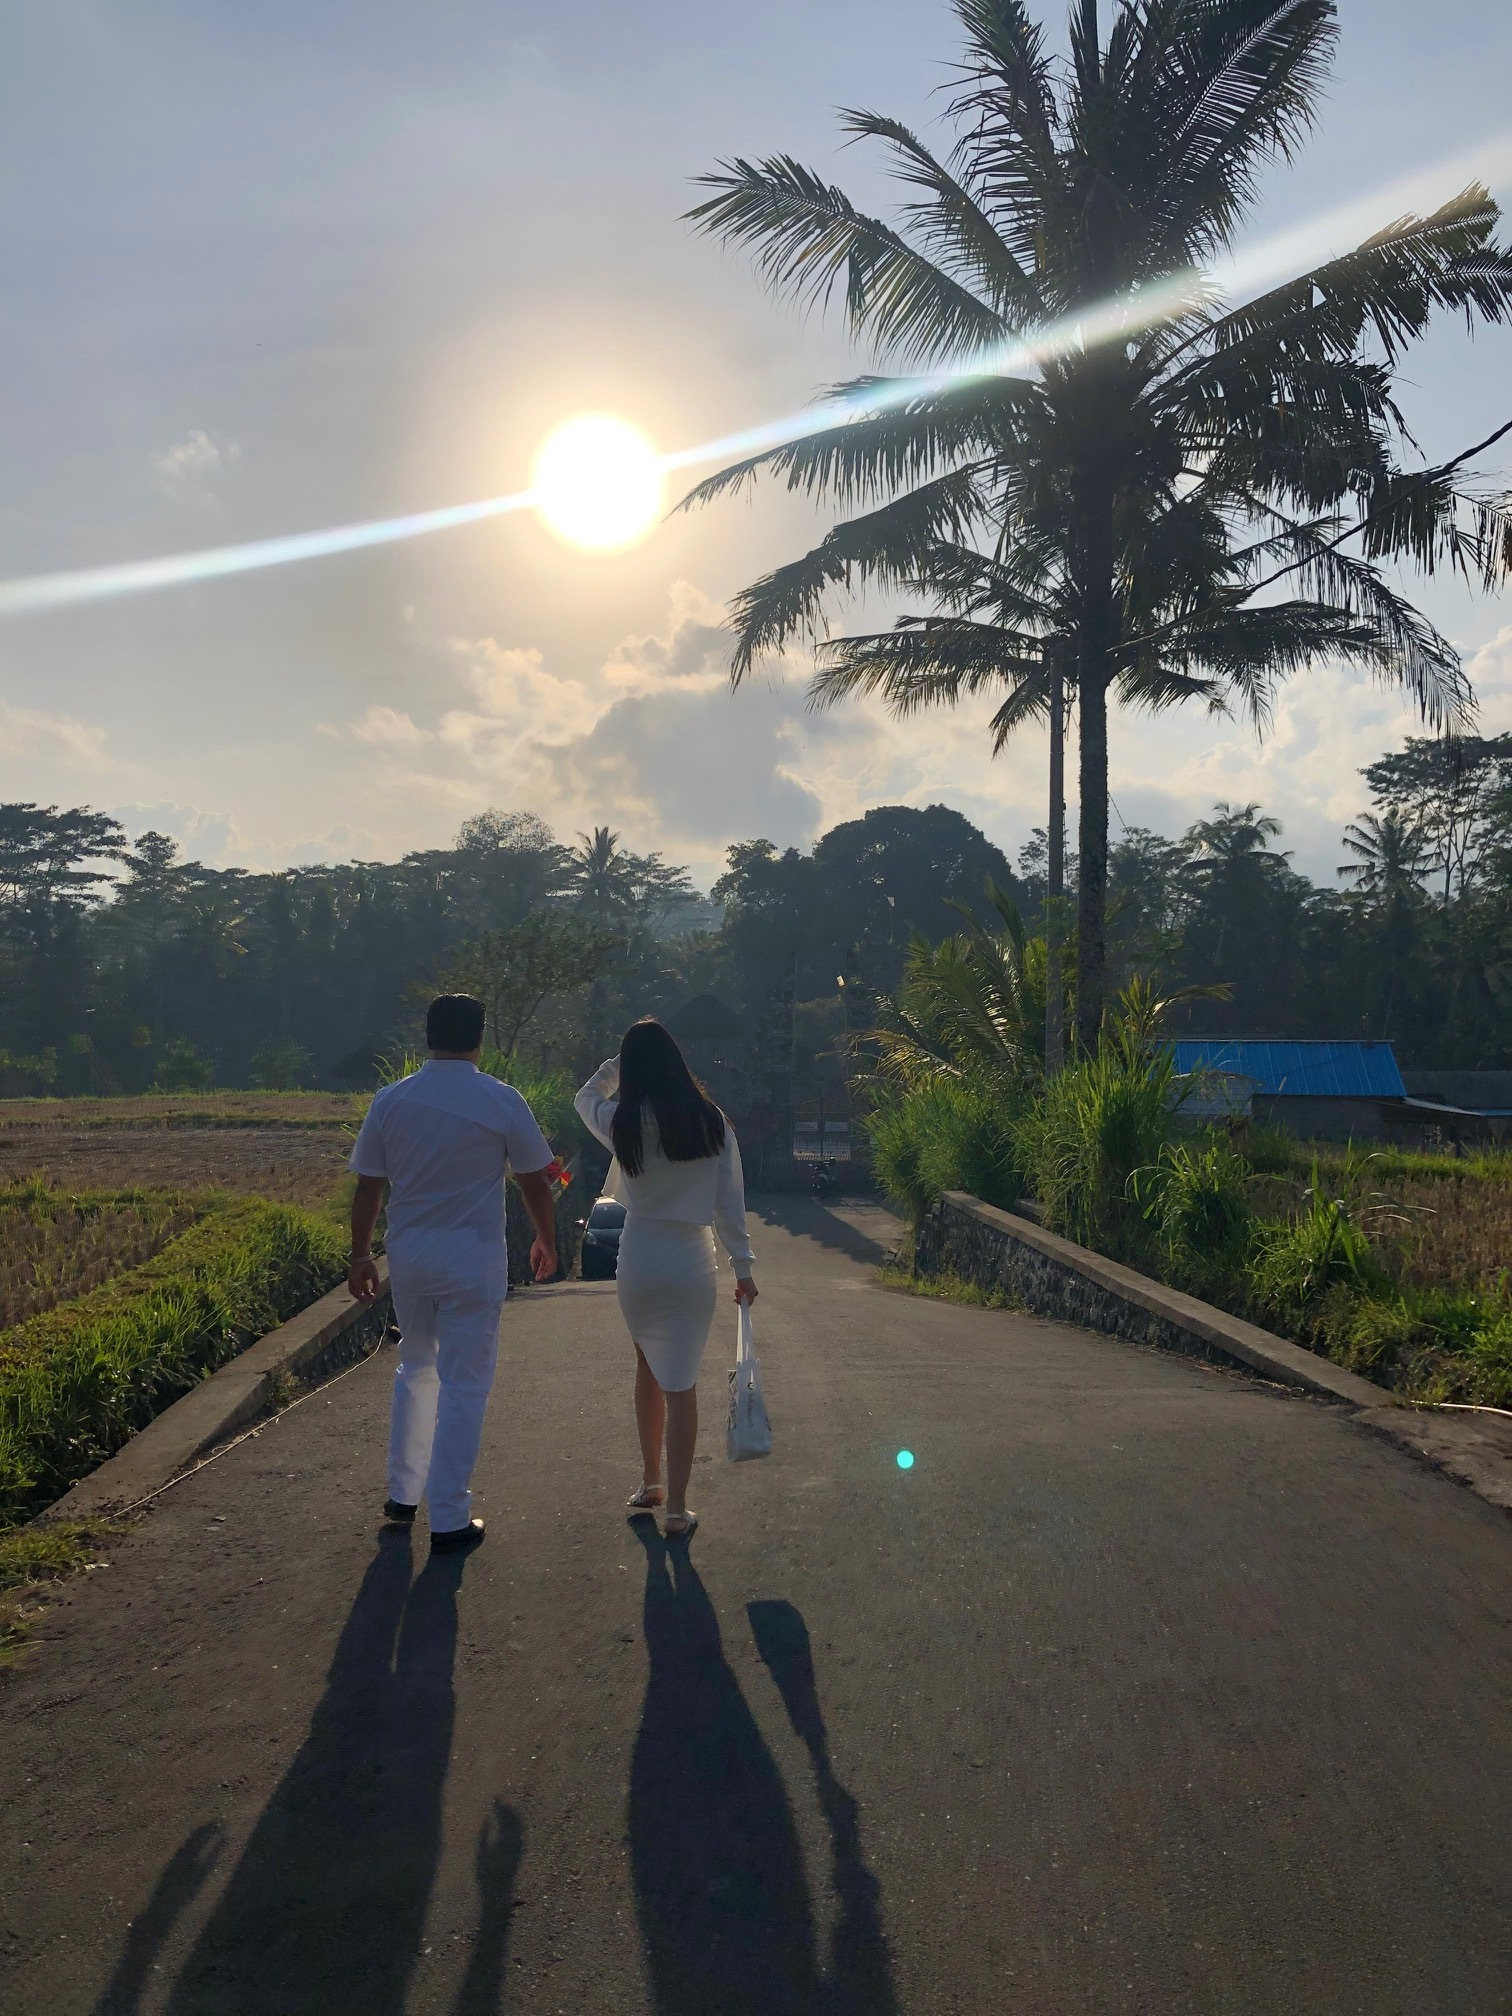 Sun rise, got me confused, It kinda feel like the sun is rising on the west in Bali.